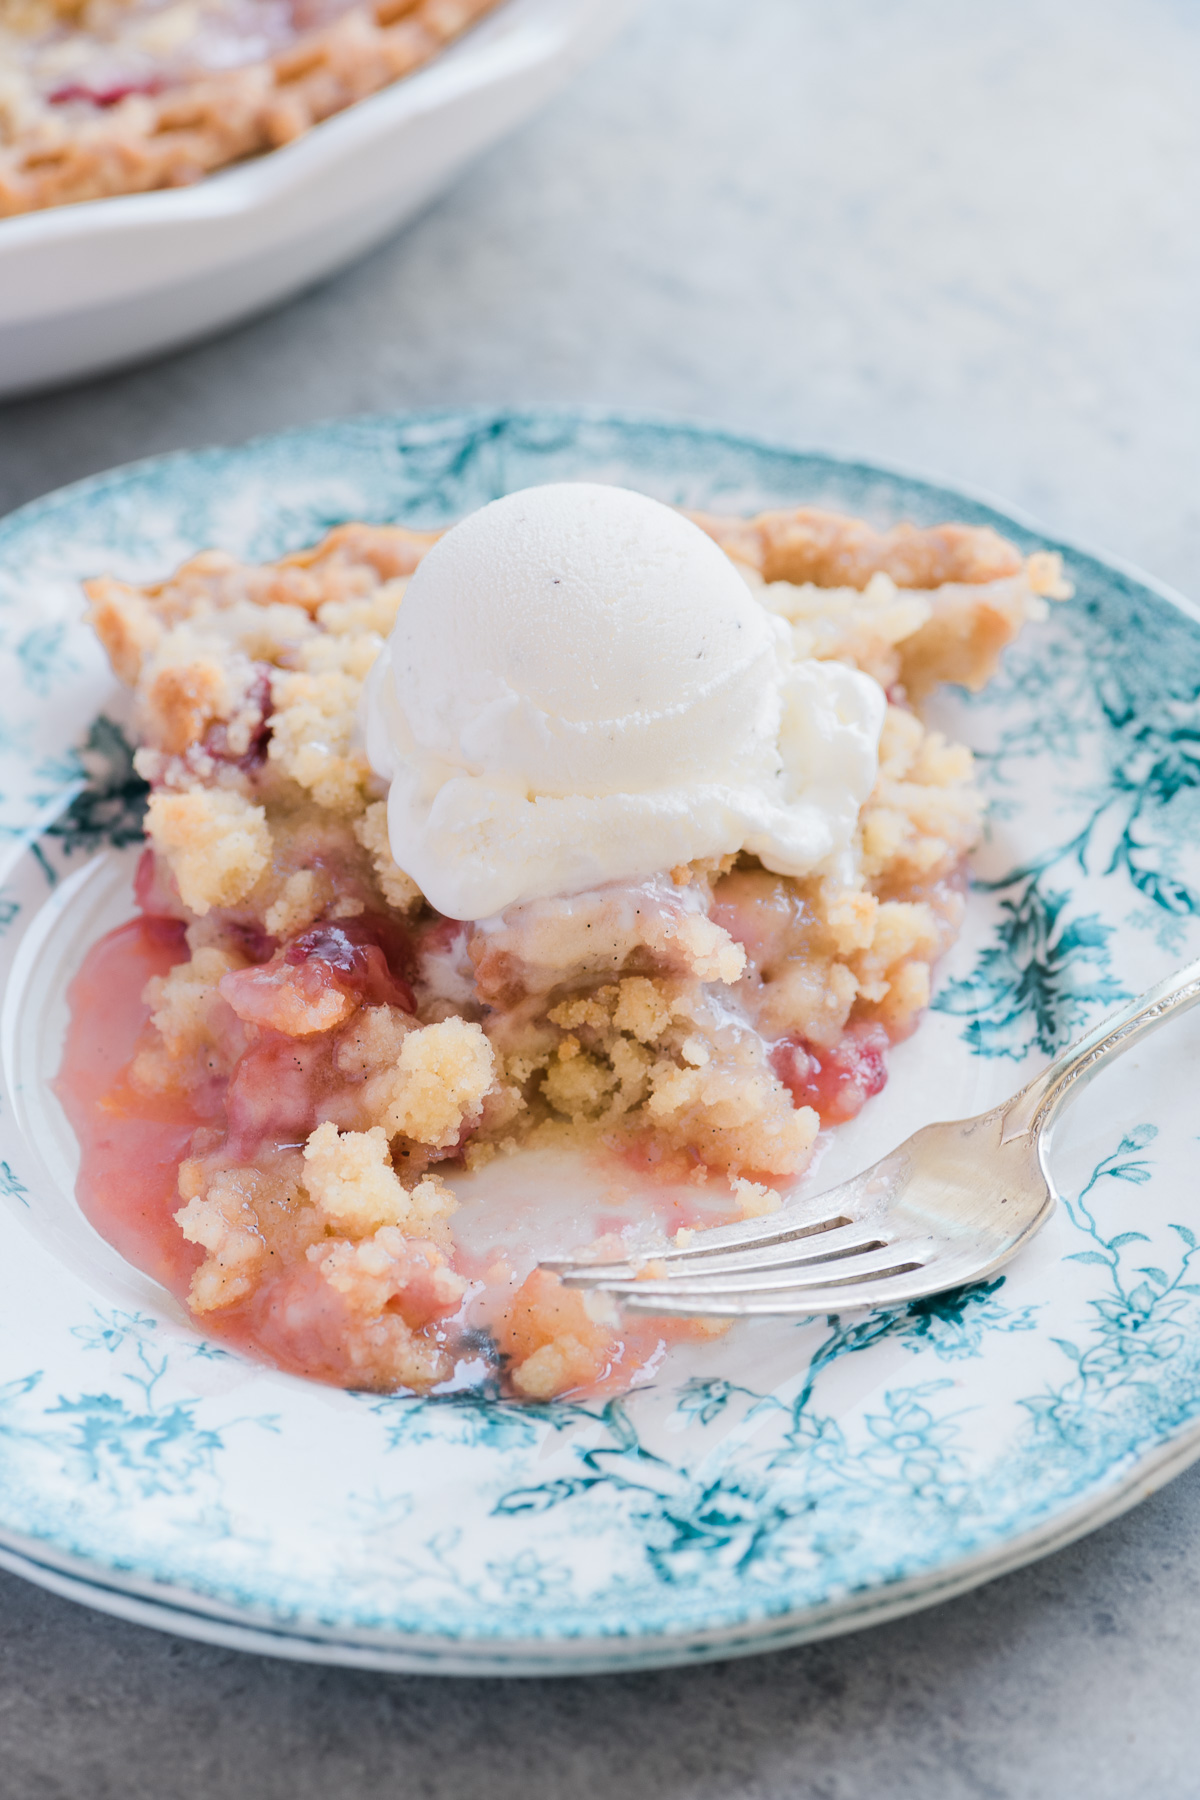 A slice of Strawberry Rhubarb Crumble Pie with ice cream